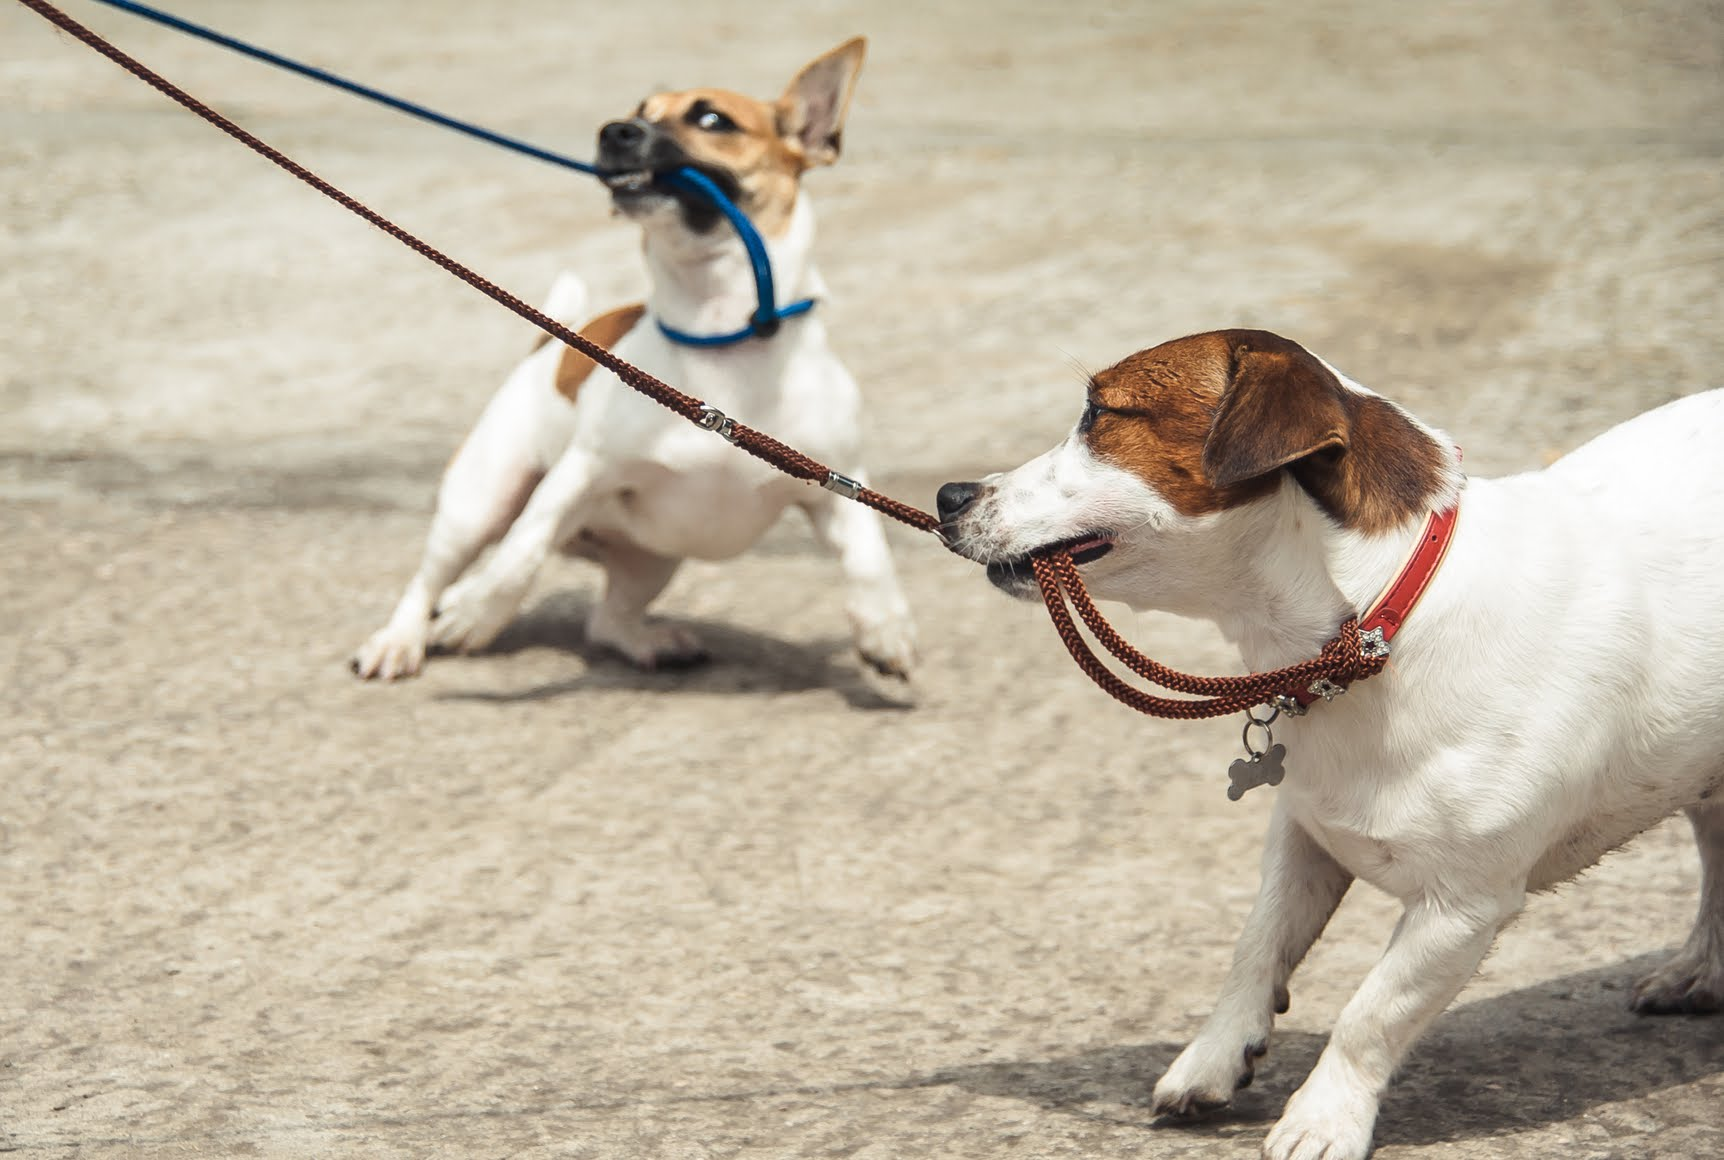 Why Do Dogs Pull On Their Lead